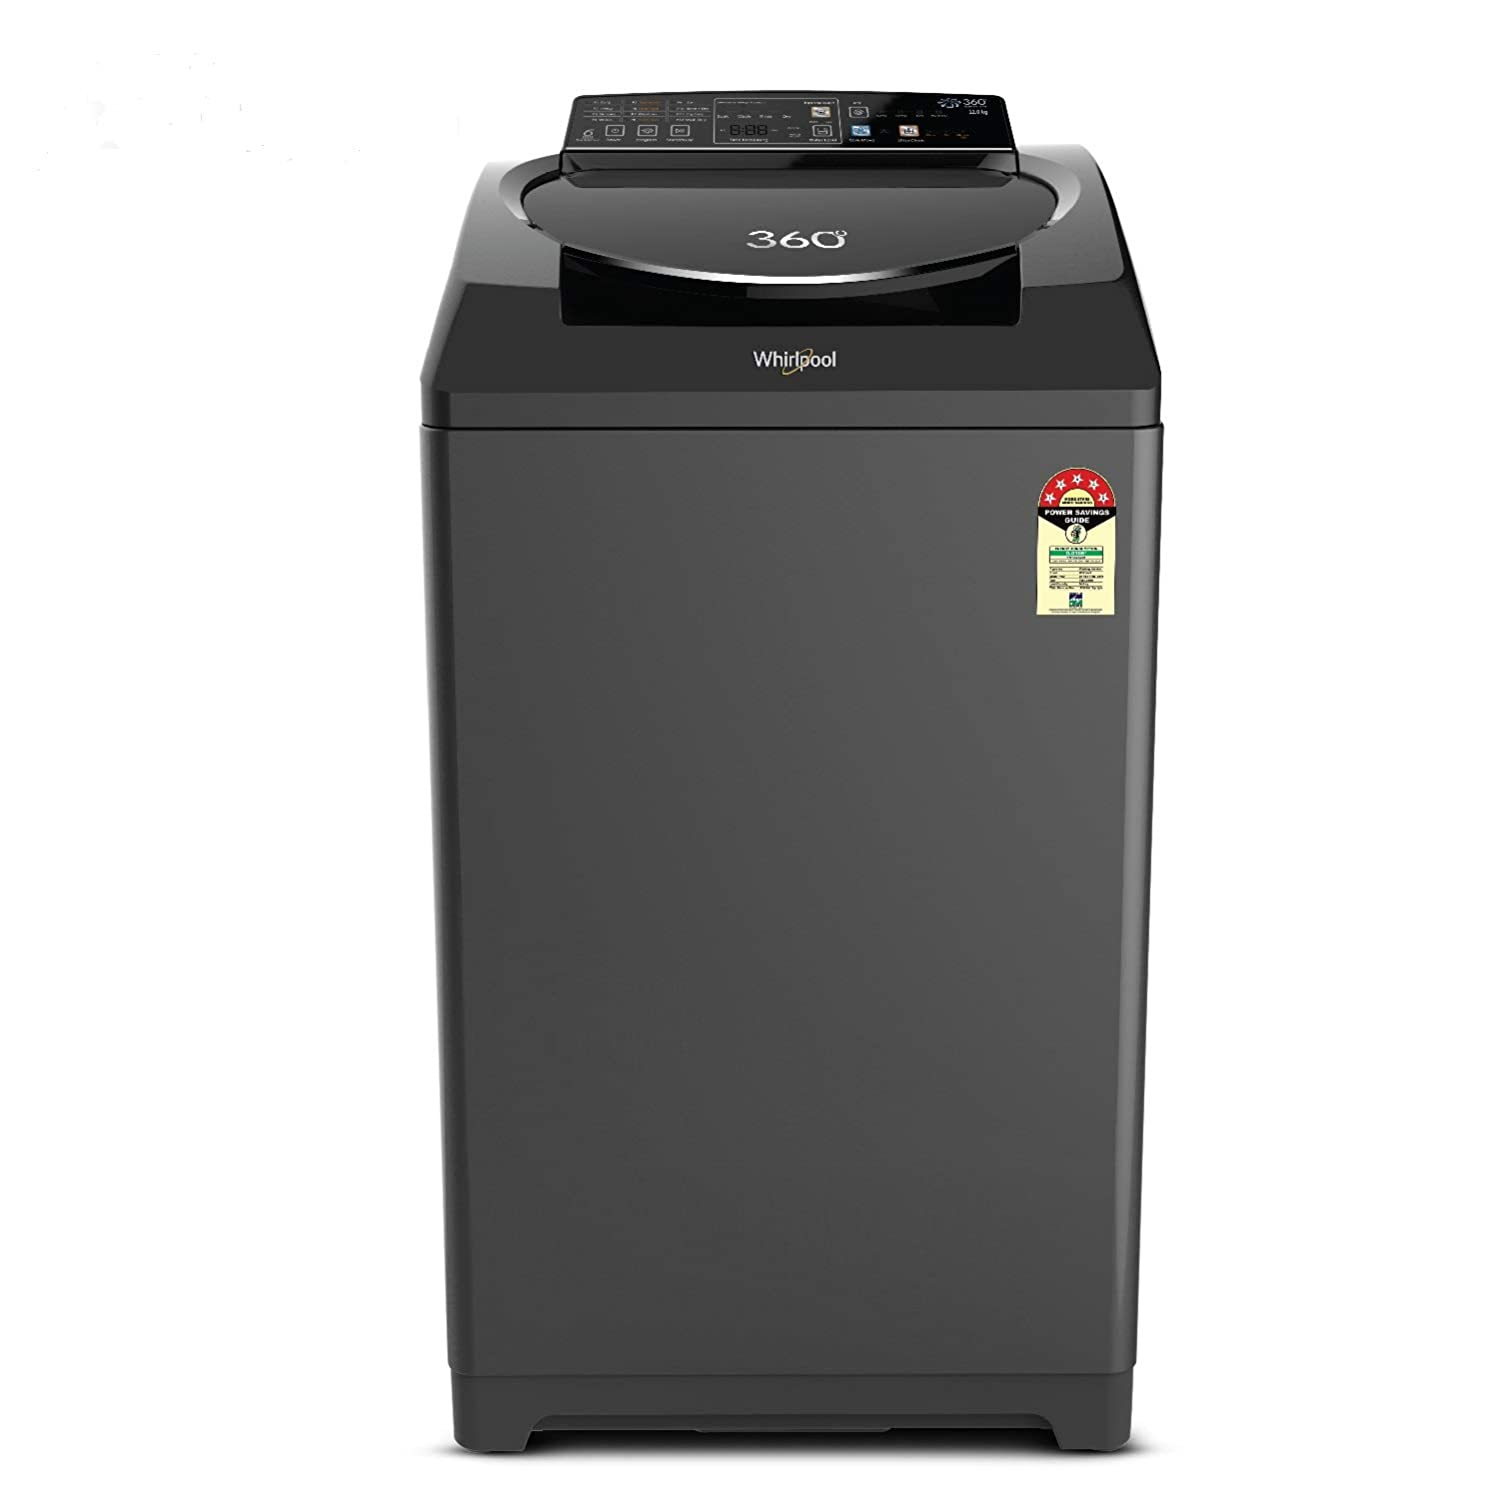 Whirlpool 0Kg Fully Automatic Washing Machine Graphite 360 Ultimate Care 12 Image